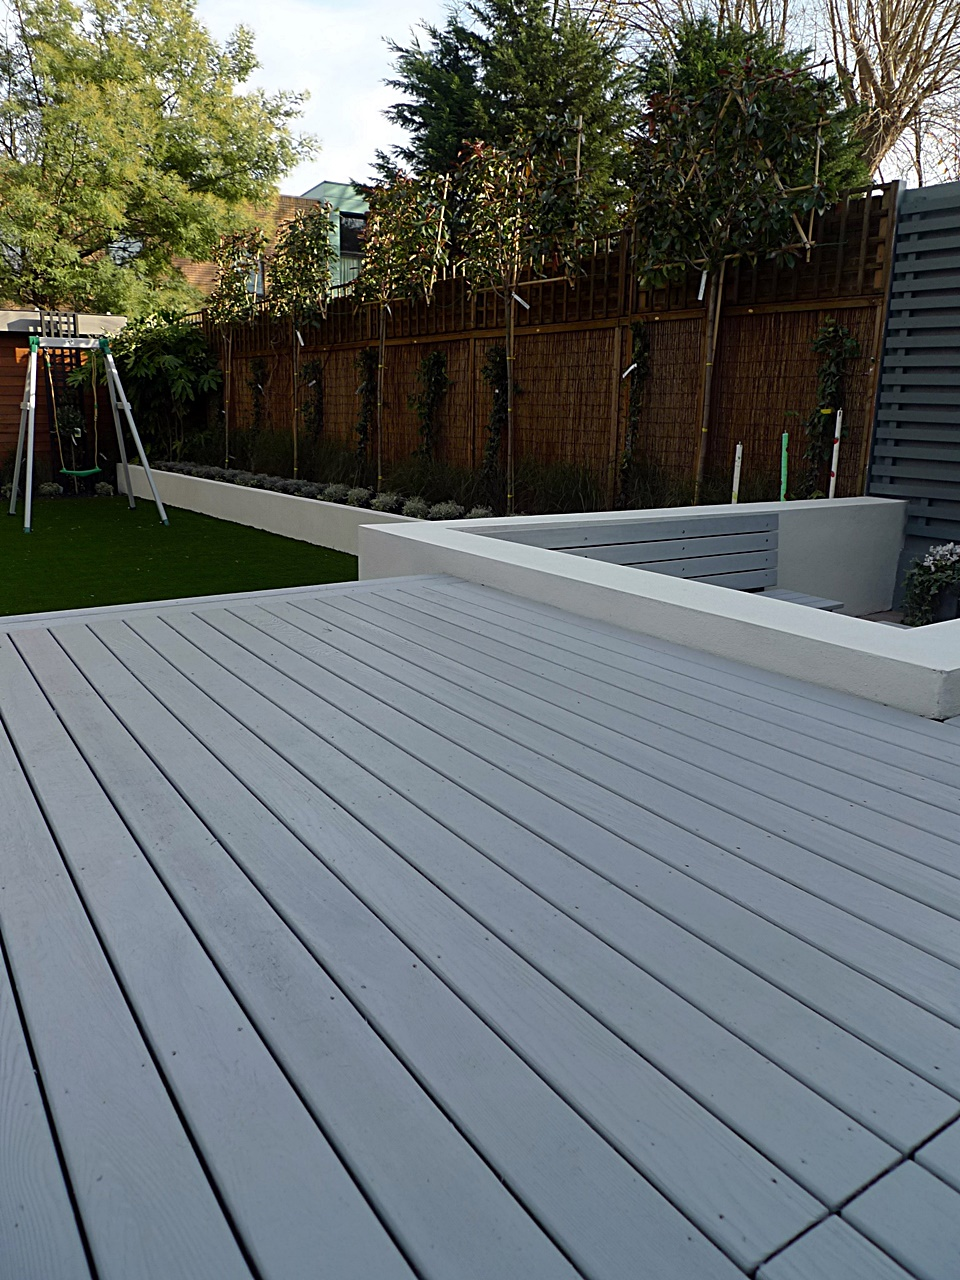 London garden blog page 3 of 38 london garden blog for Low maintenance decking